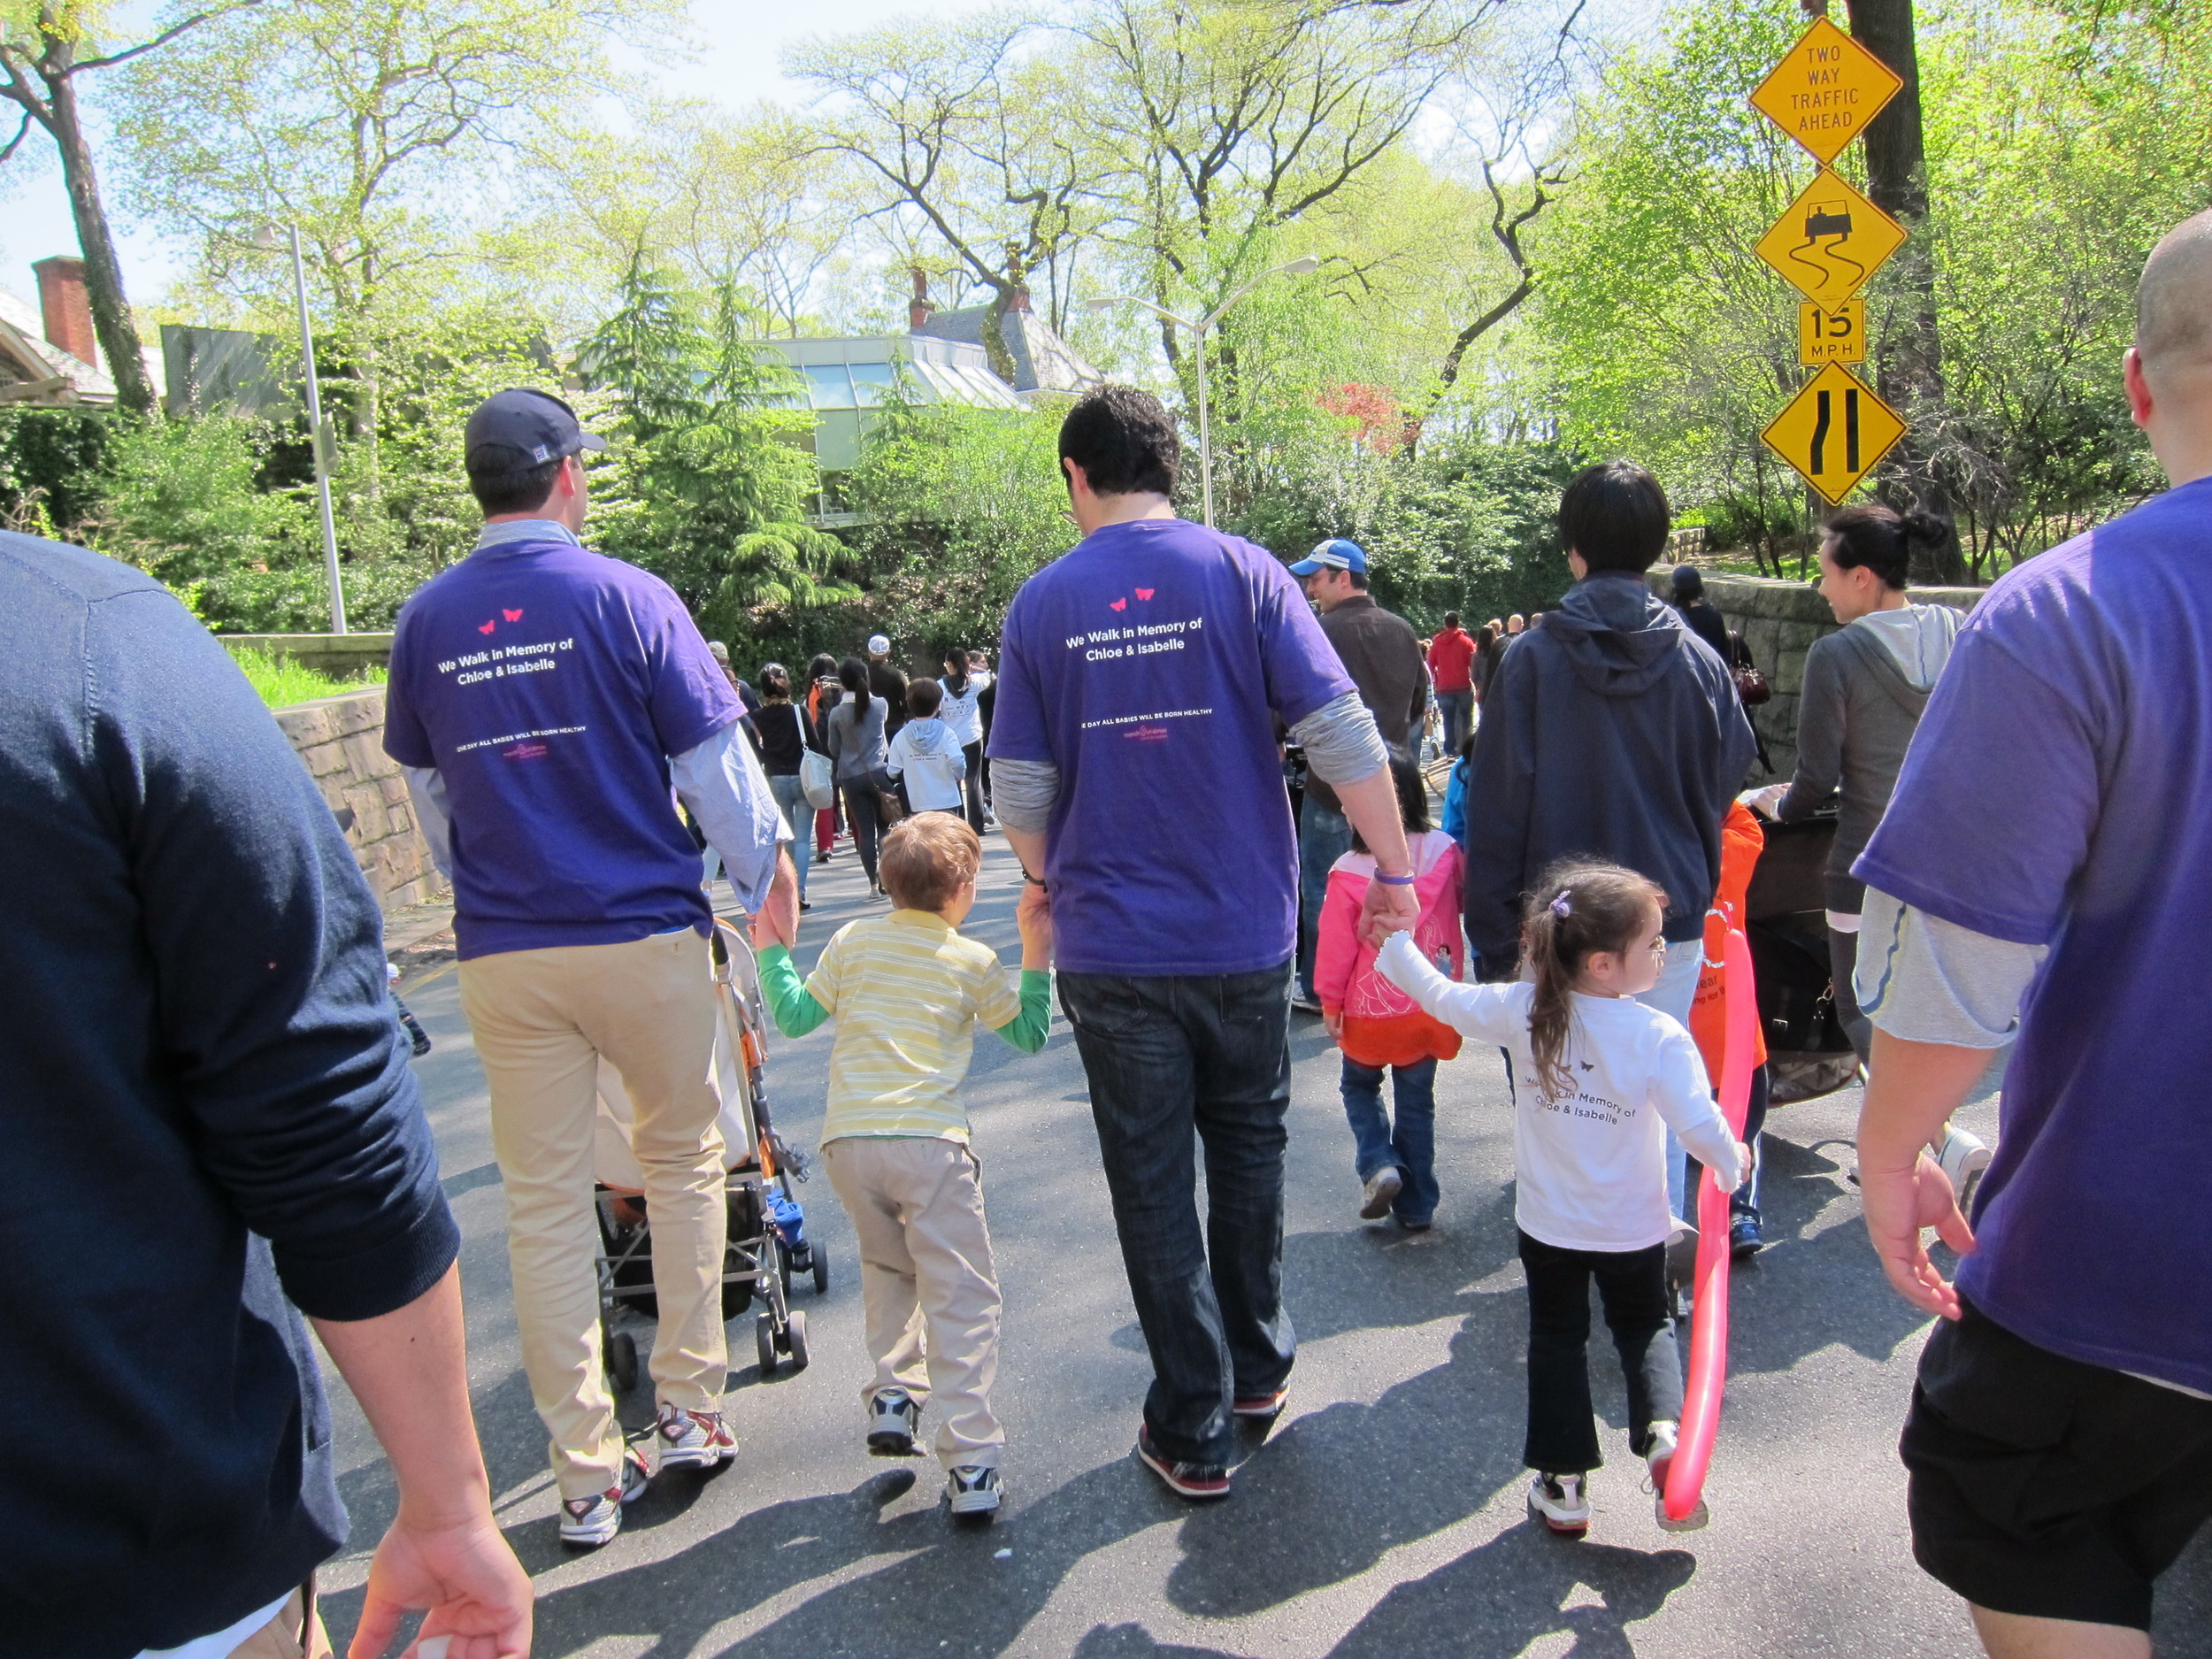 march-for-babies-walk_7009310523_o.jpg